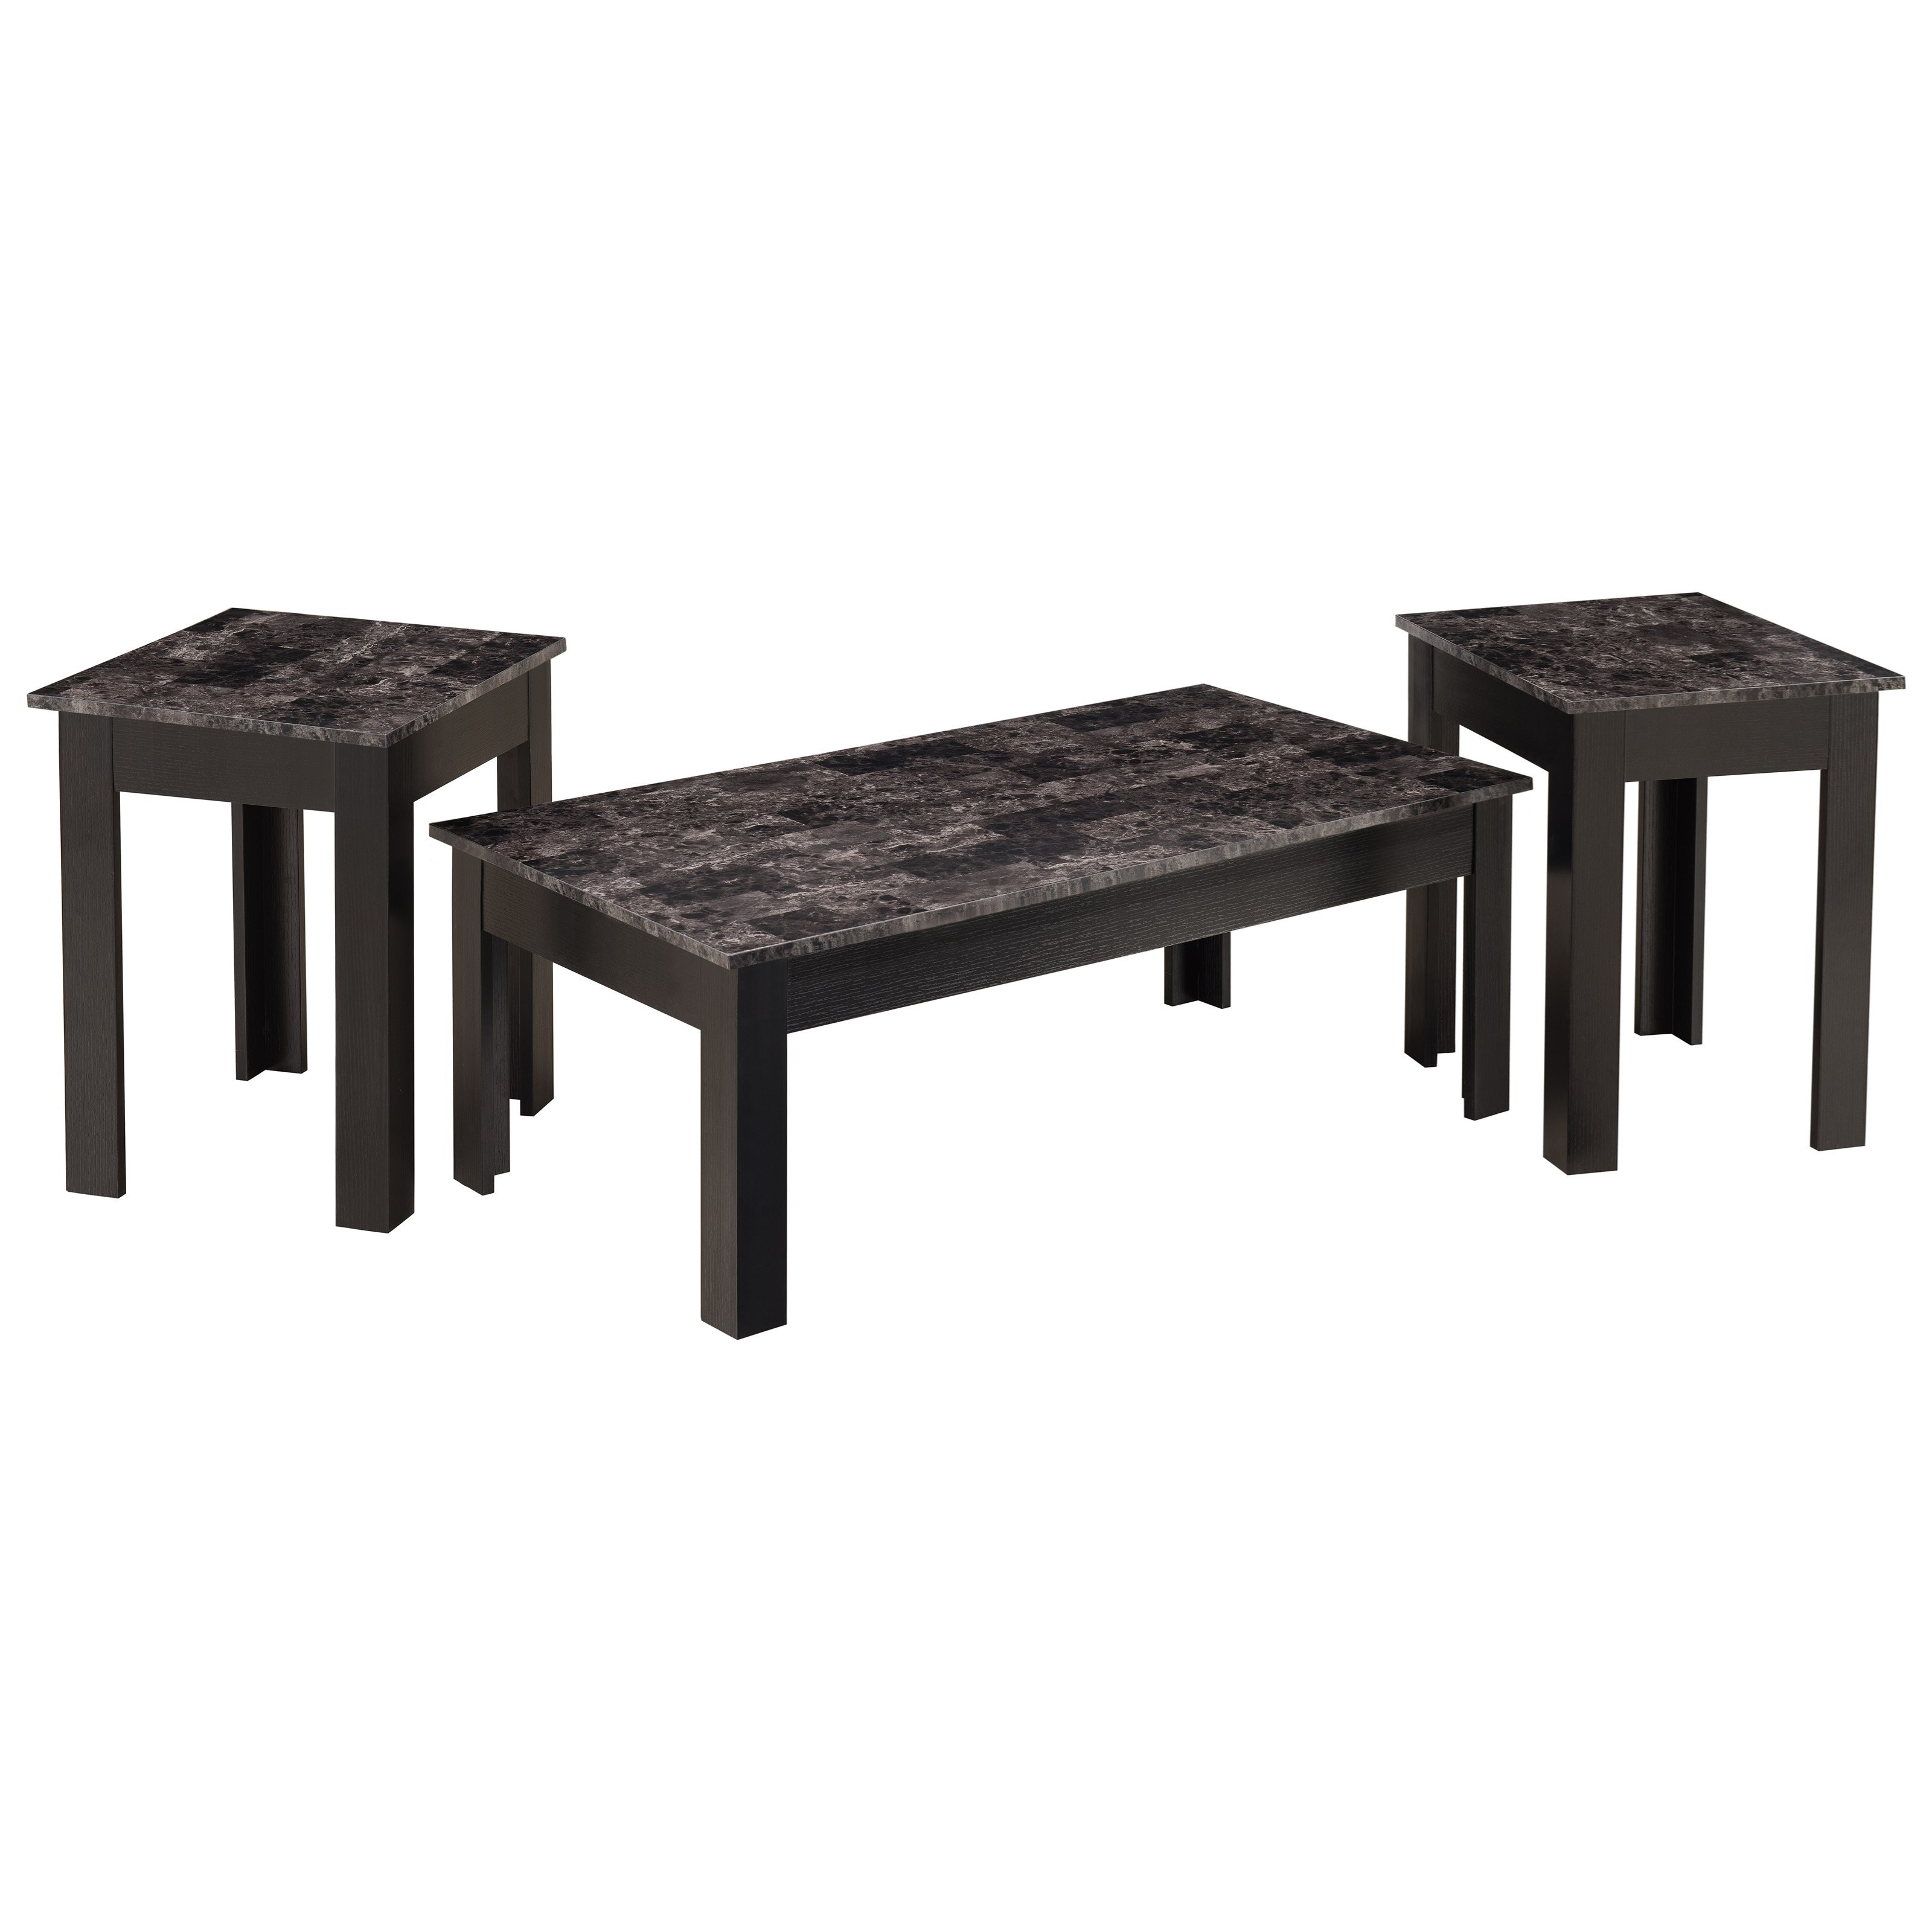 Simmons Upholstery 7008 3 Piece Occasional Table Set - Item Number: 7008-43